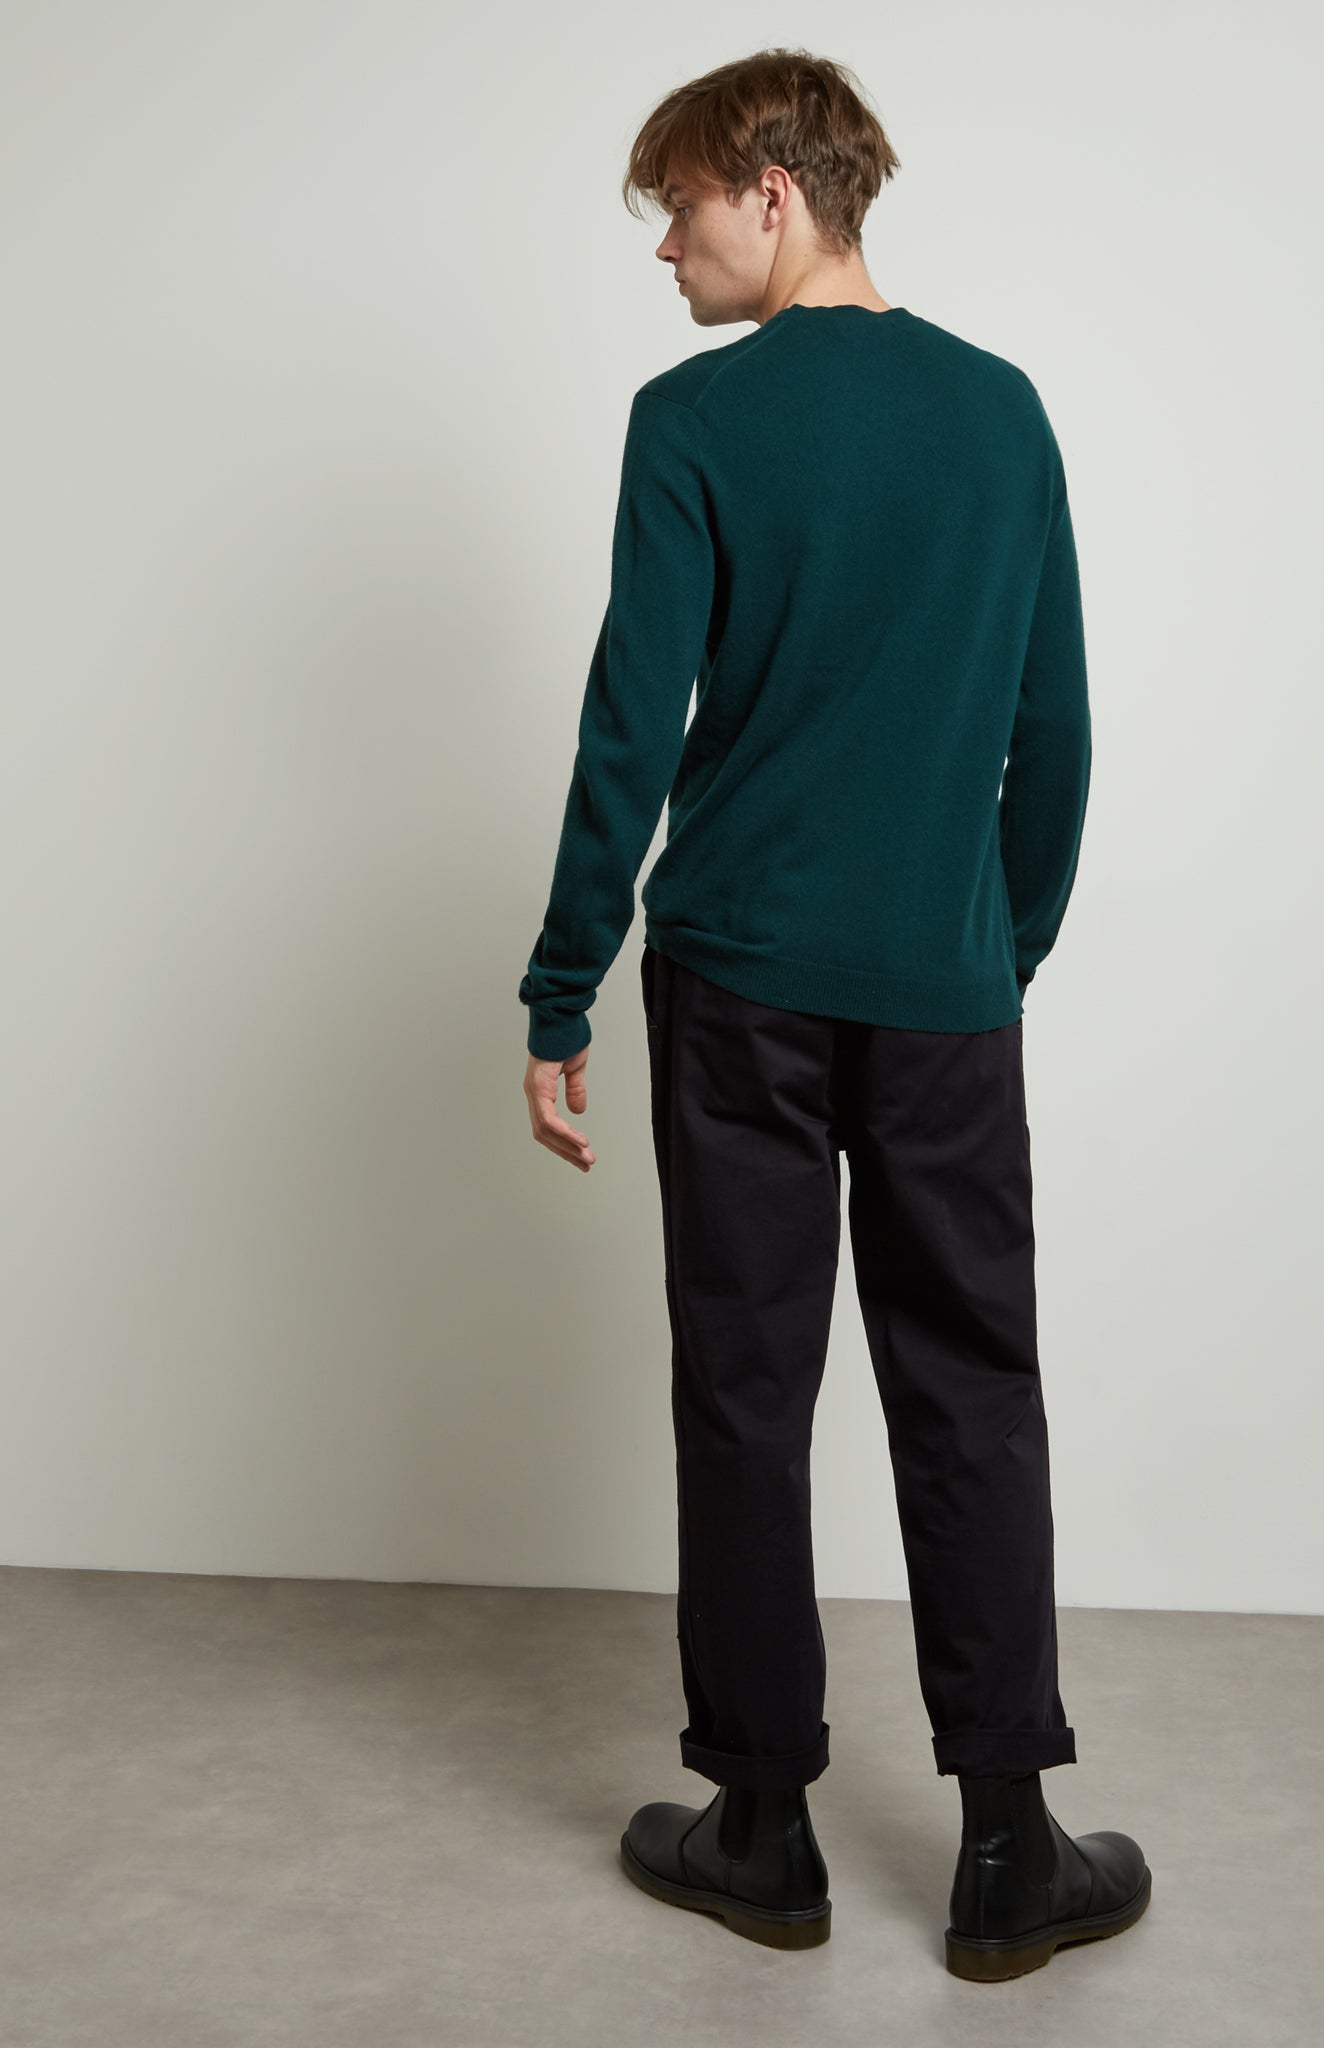 Men's Classic Round Neck Cashmere Jumper In Evergreen